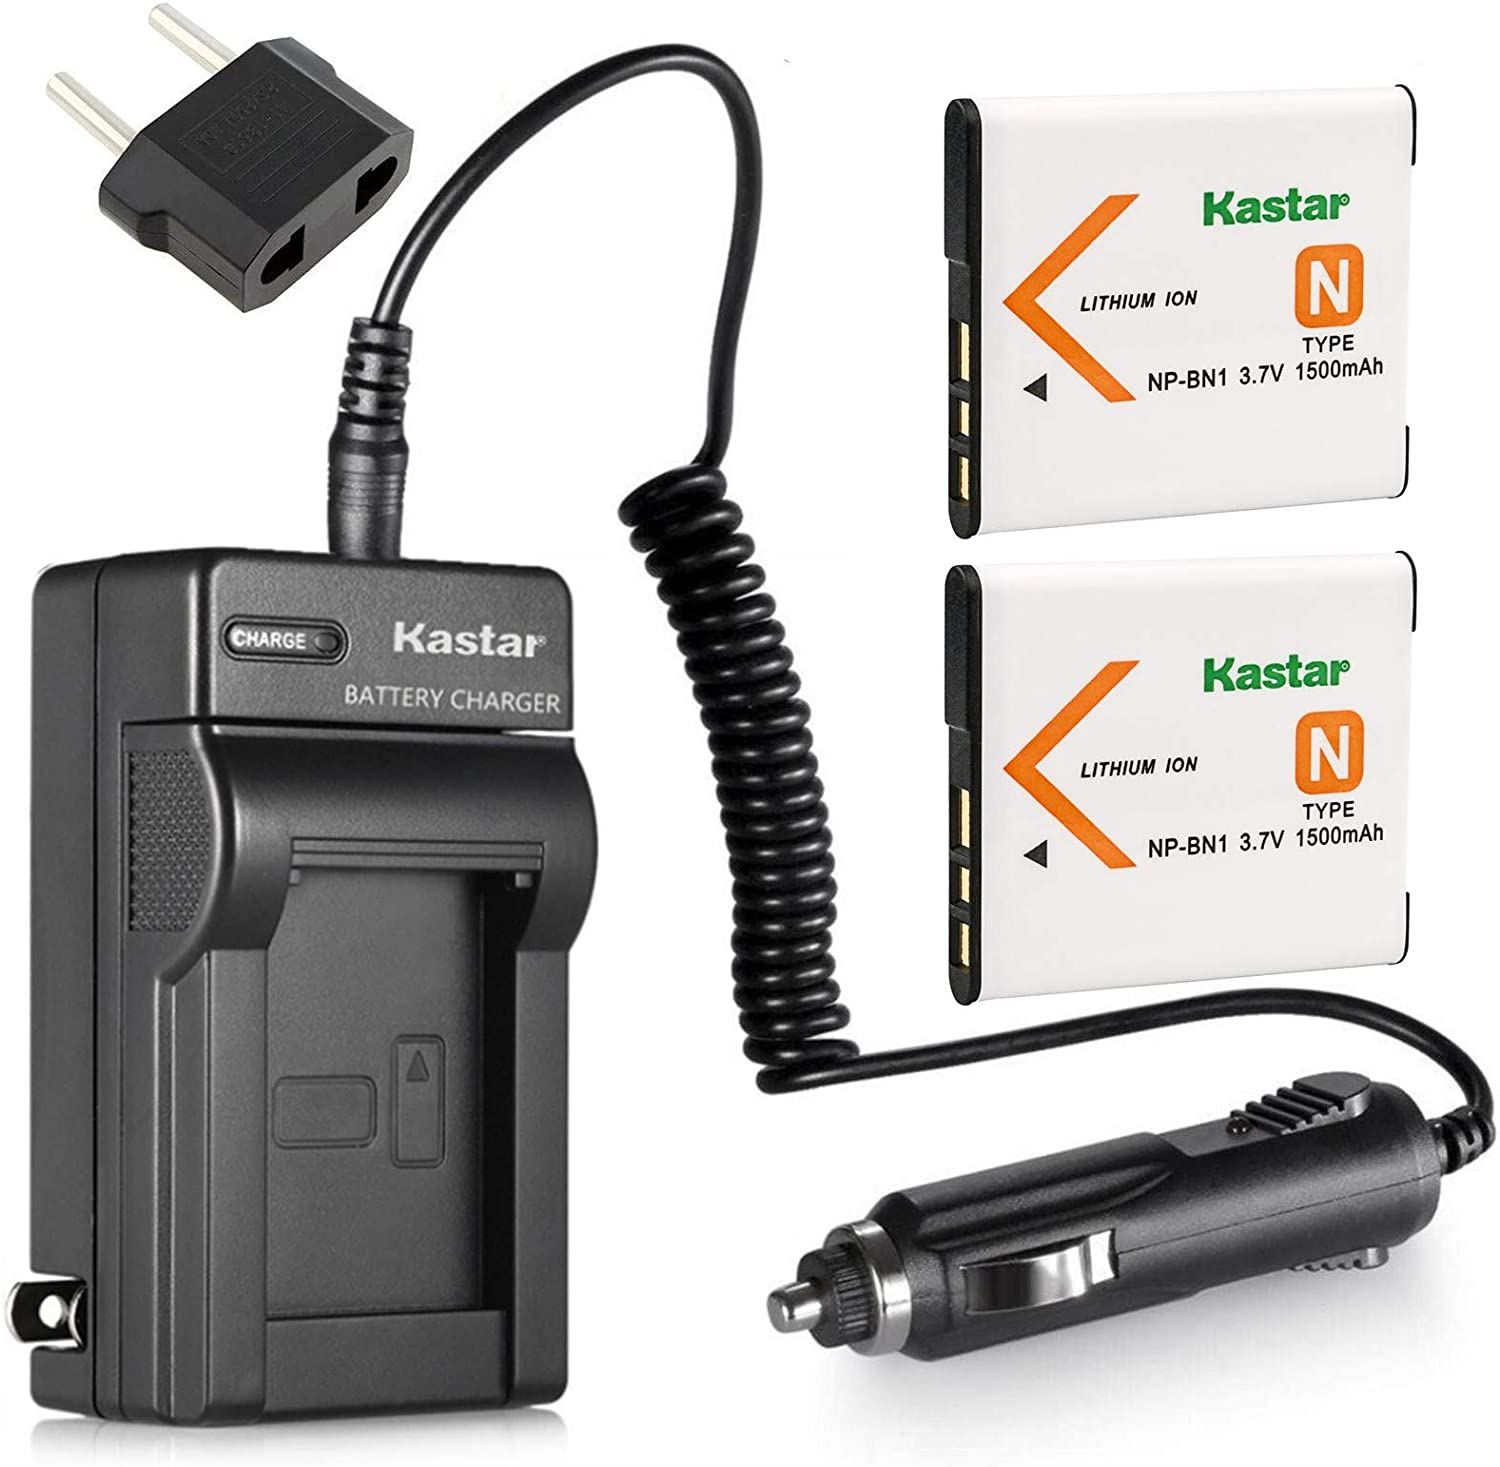 Kastar Award Battery 2-Pack and Charger NP-BN1 for Kit BC-CSN work Free shipping